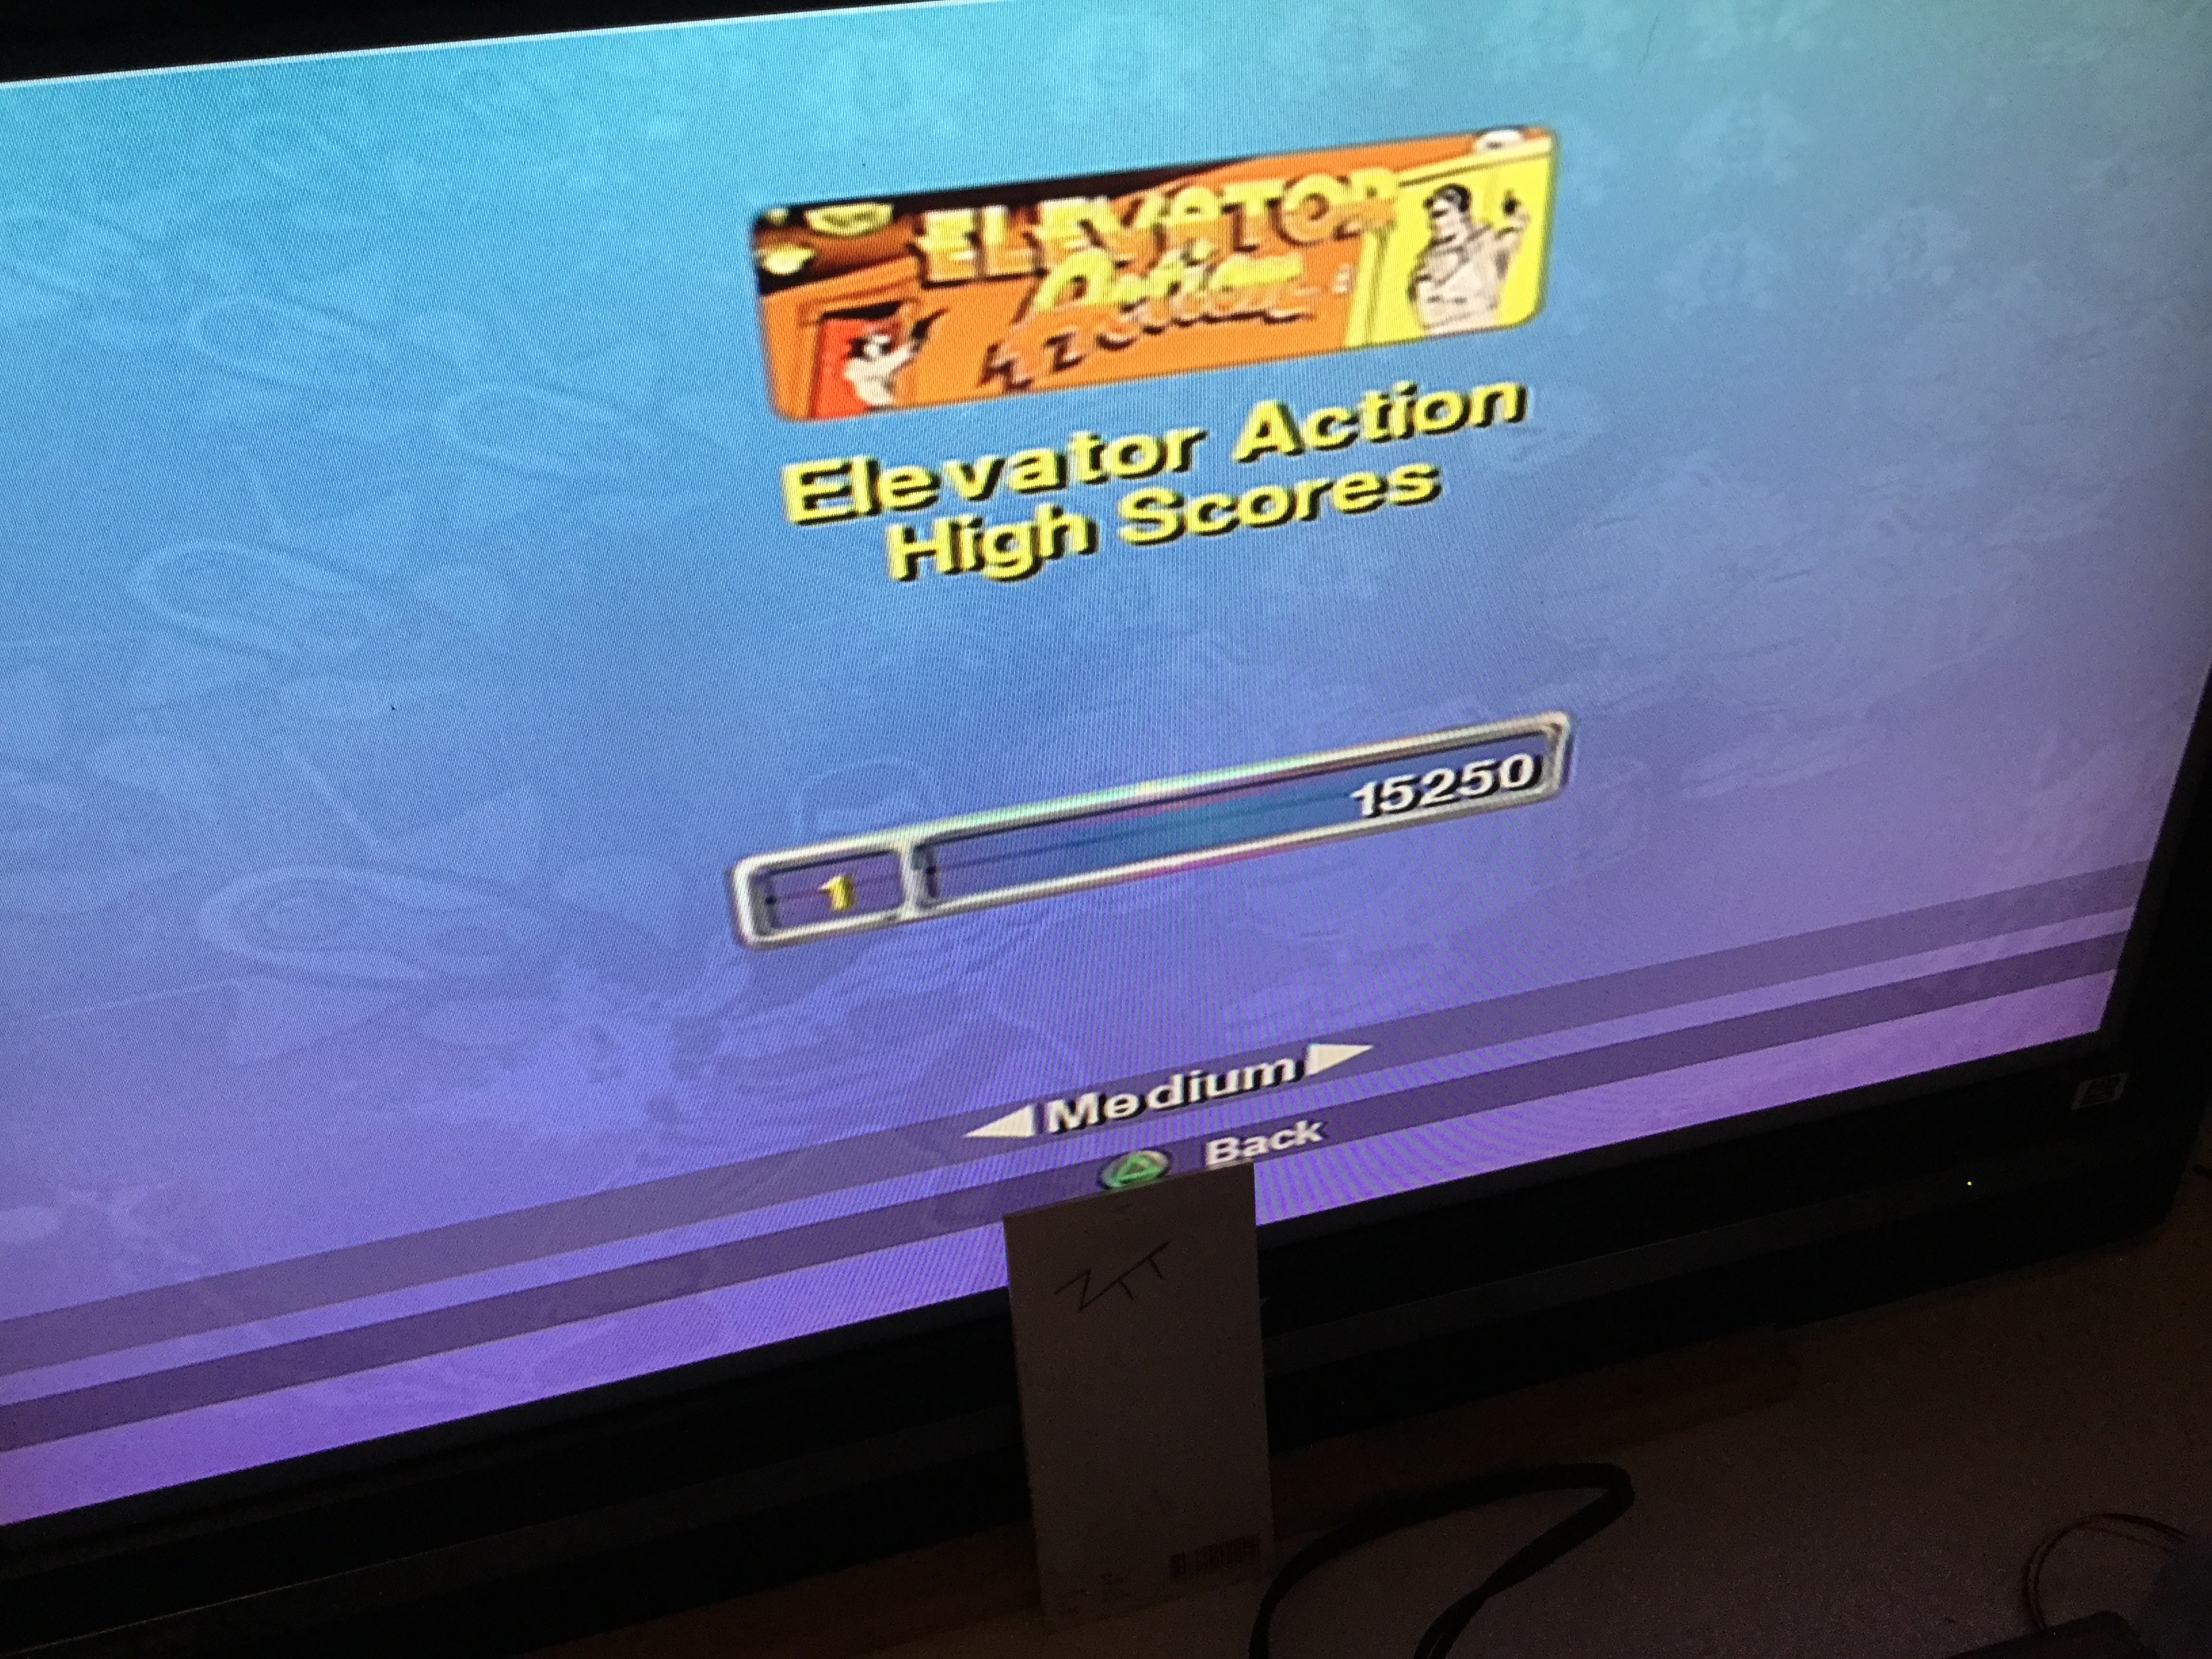 Frankie: Taito Legends: Elevator Action [Medium] (Playstation 2) 15,250 points on 2018-03-18 12:39:07